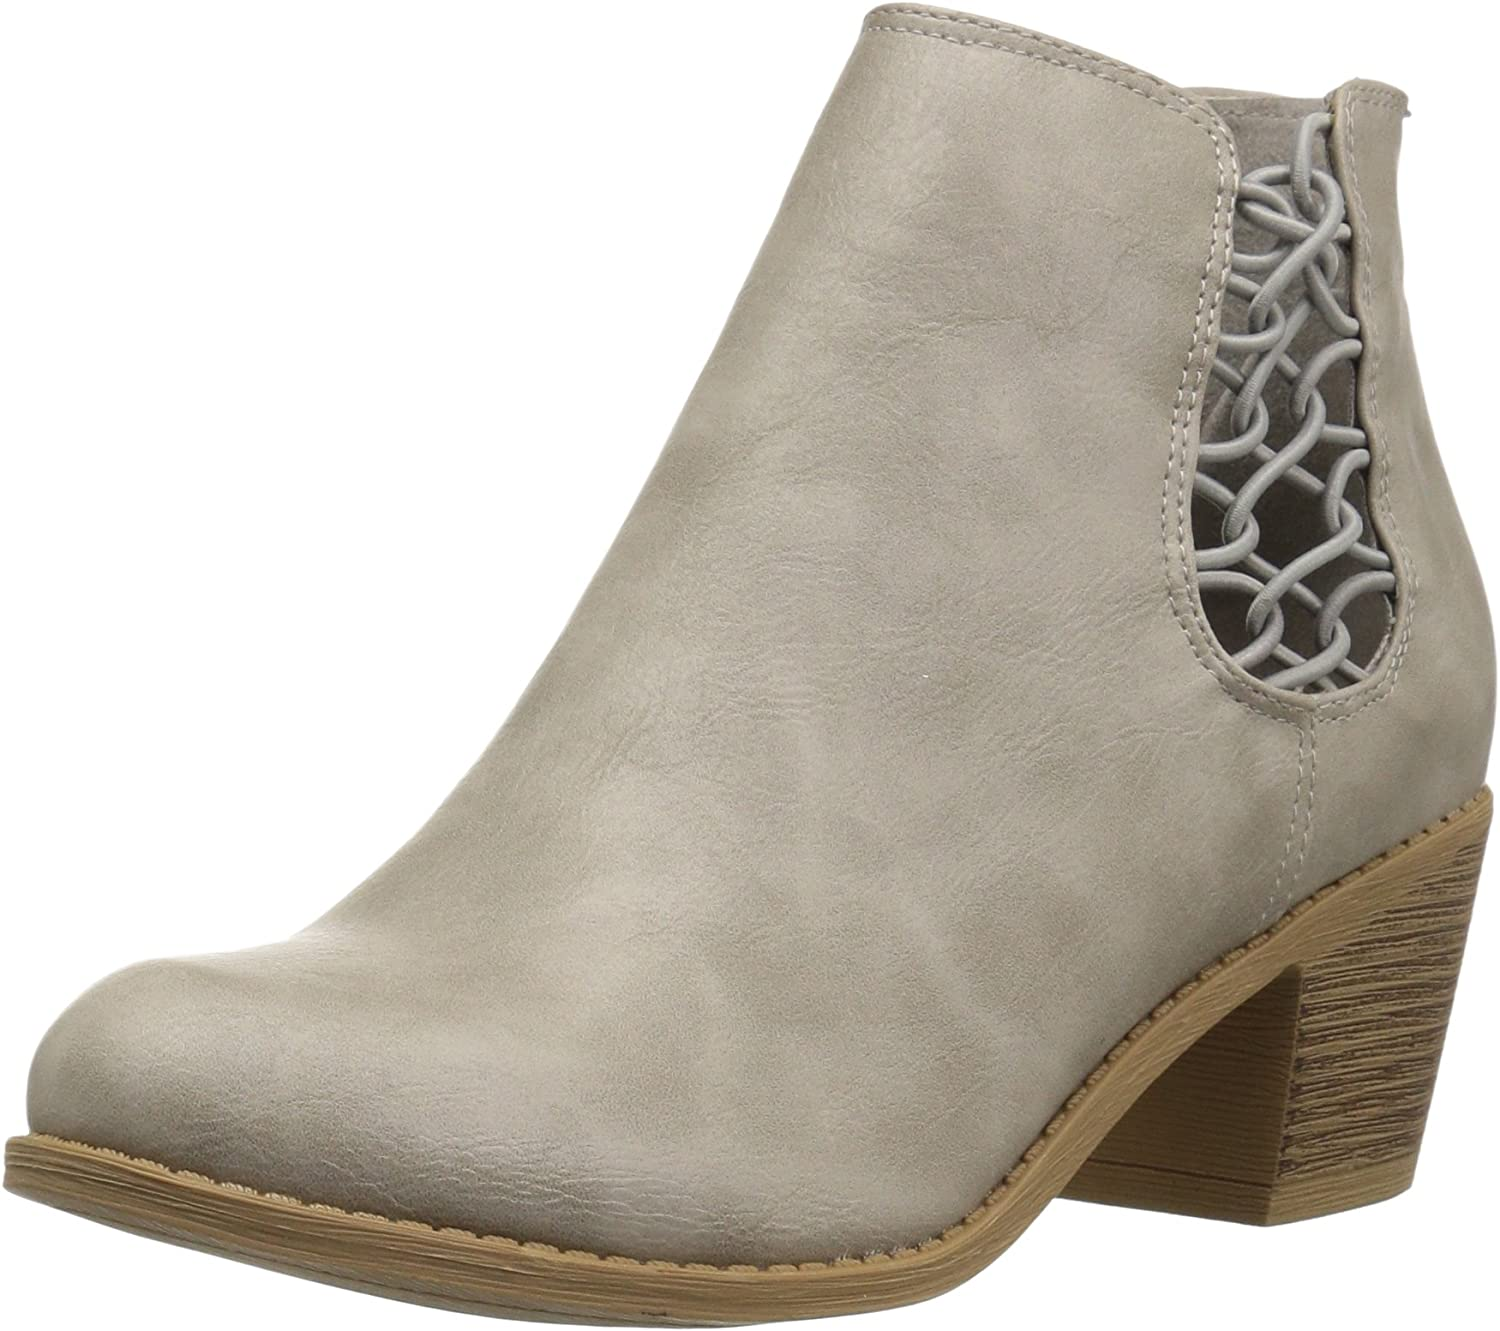 Brinley Co Womens Tilma Ankle Boot